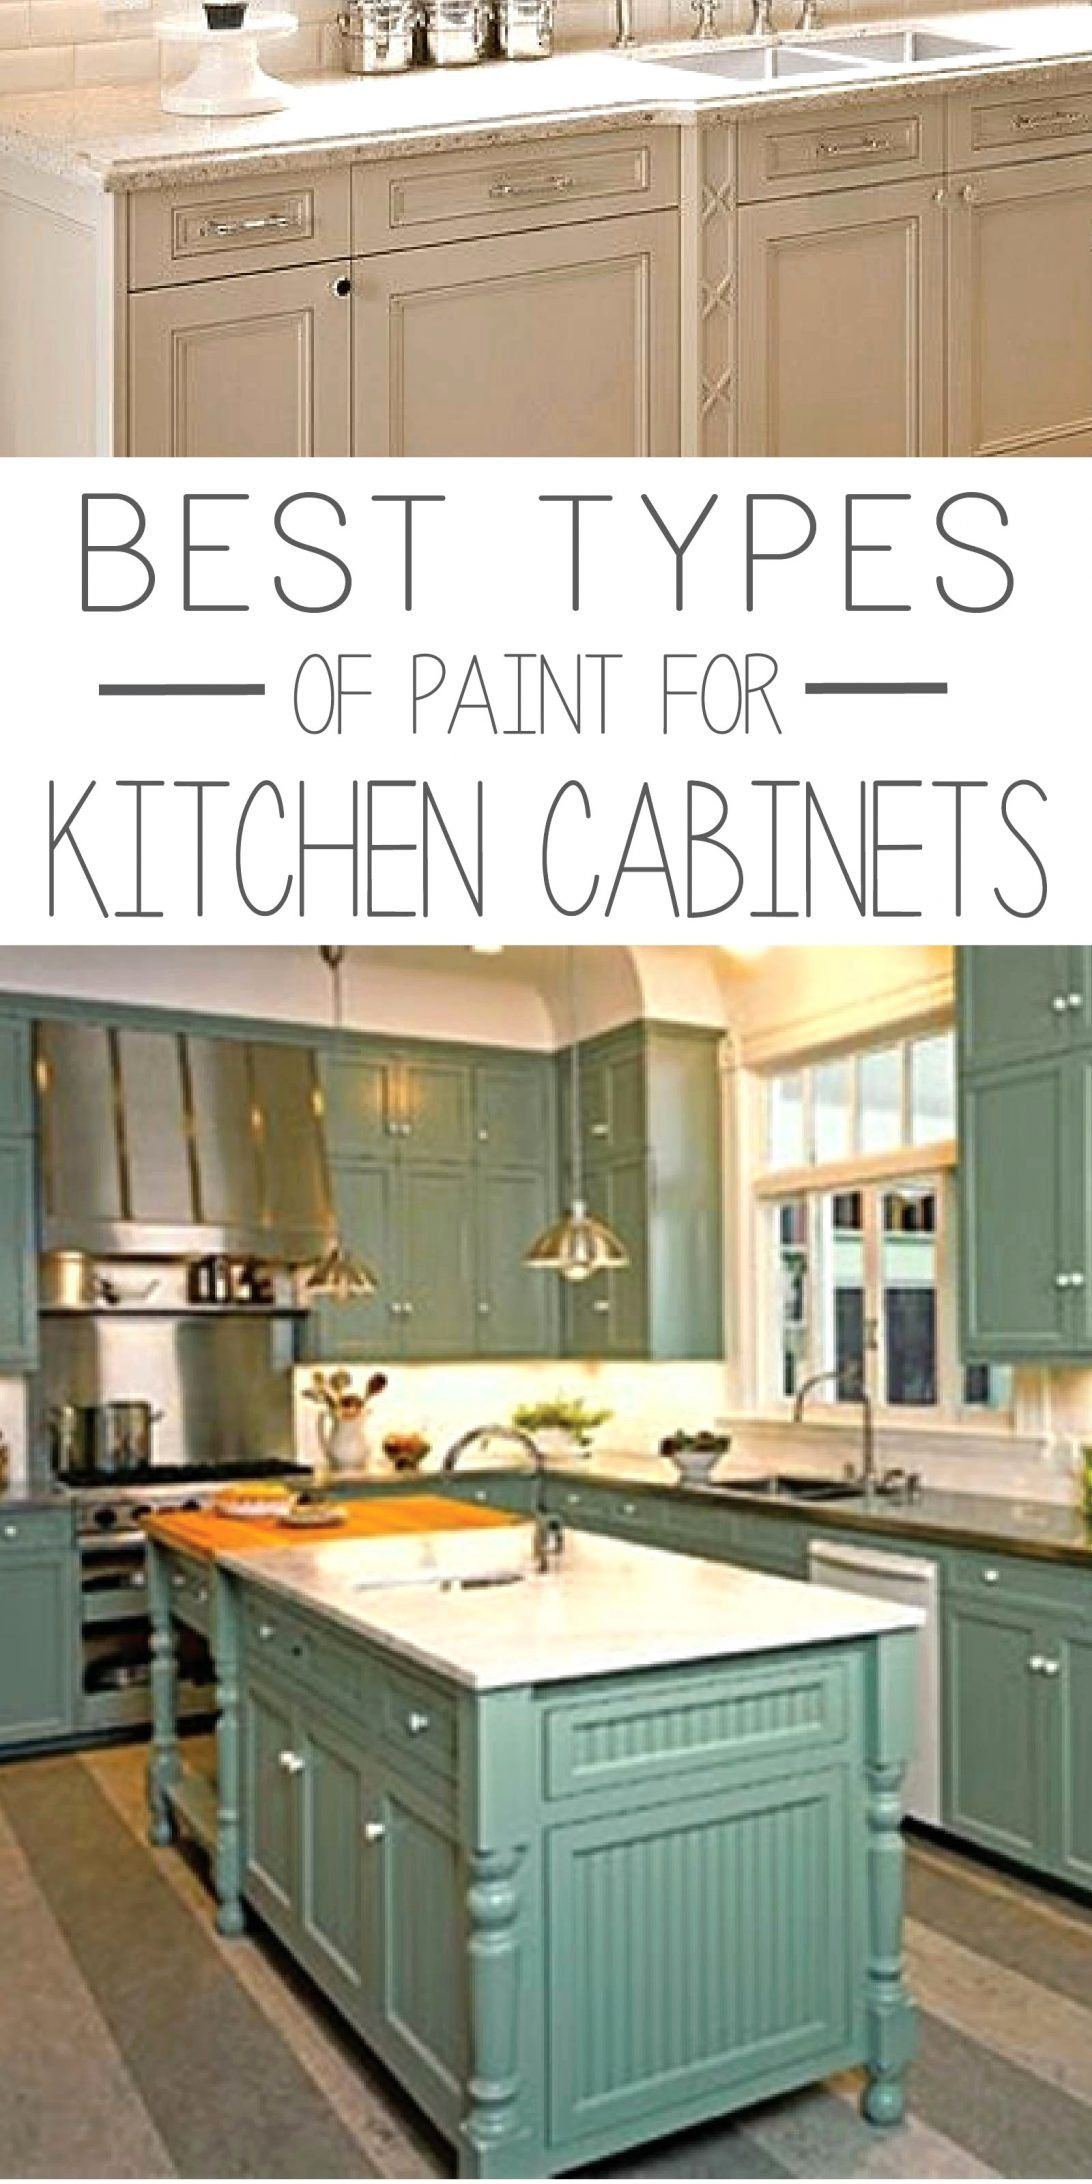 Fresh Kitchen Cabinet Distributors The Most Awesome In Addition To Lovely Kitchen Cabinet Distributors For Inspire Your Own Home Present House Inviting Dream